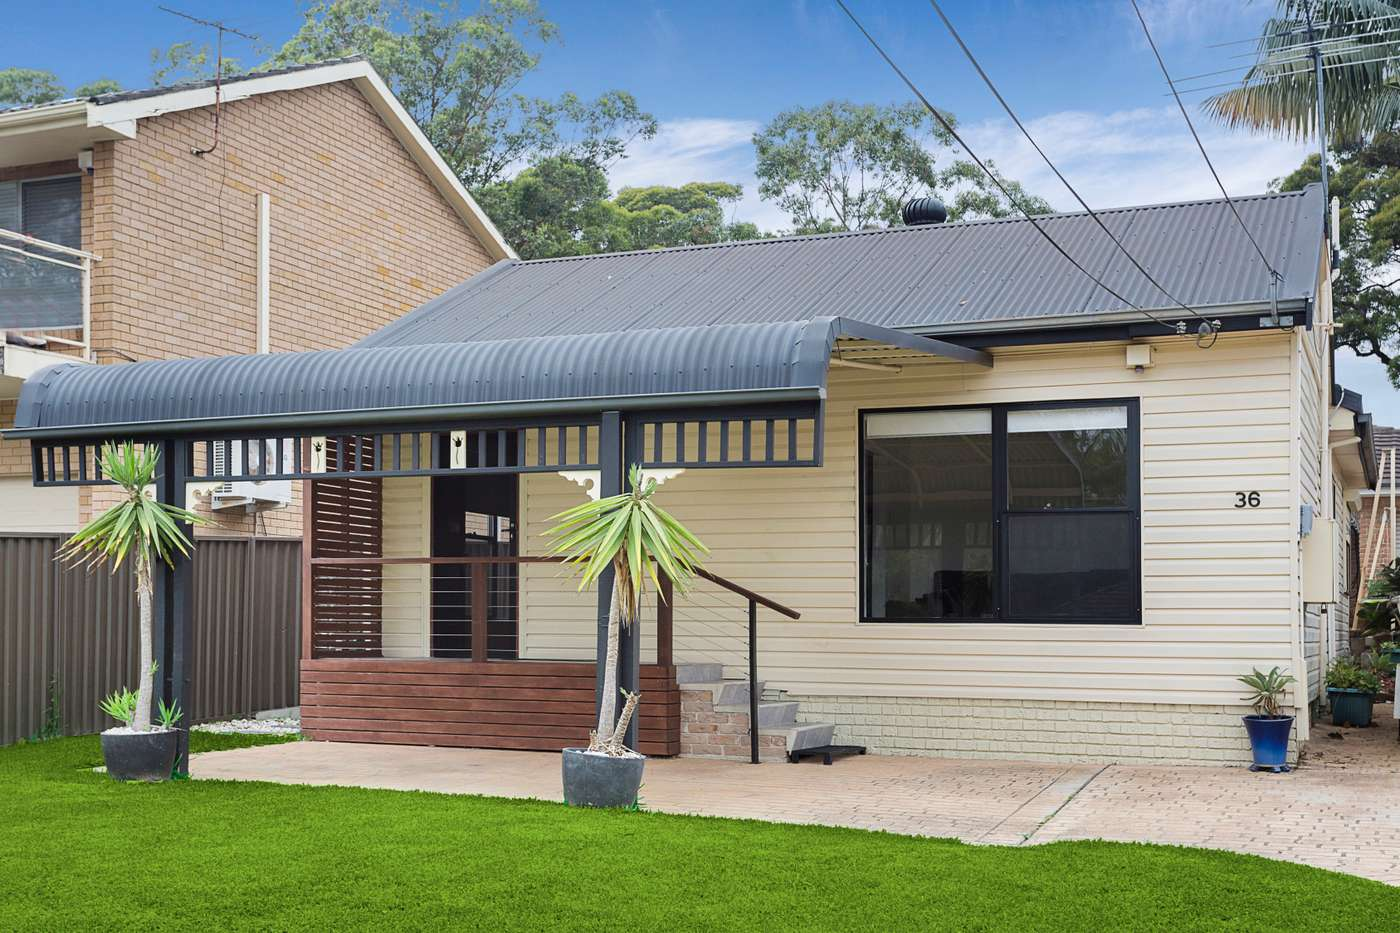 Main view of Homely house listing, 1/36 Gwawley pde, Miranda, NSW 2228